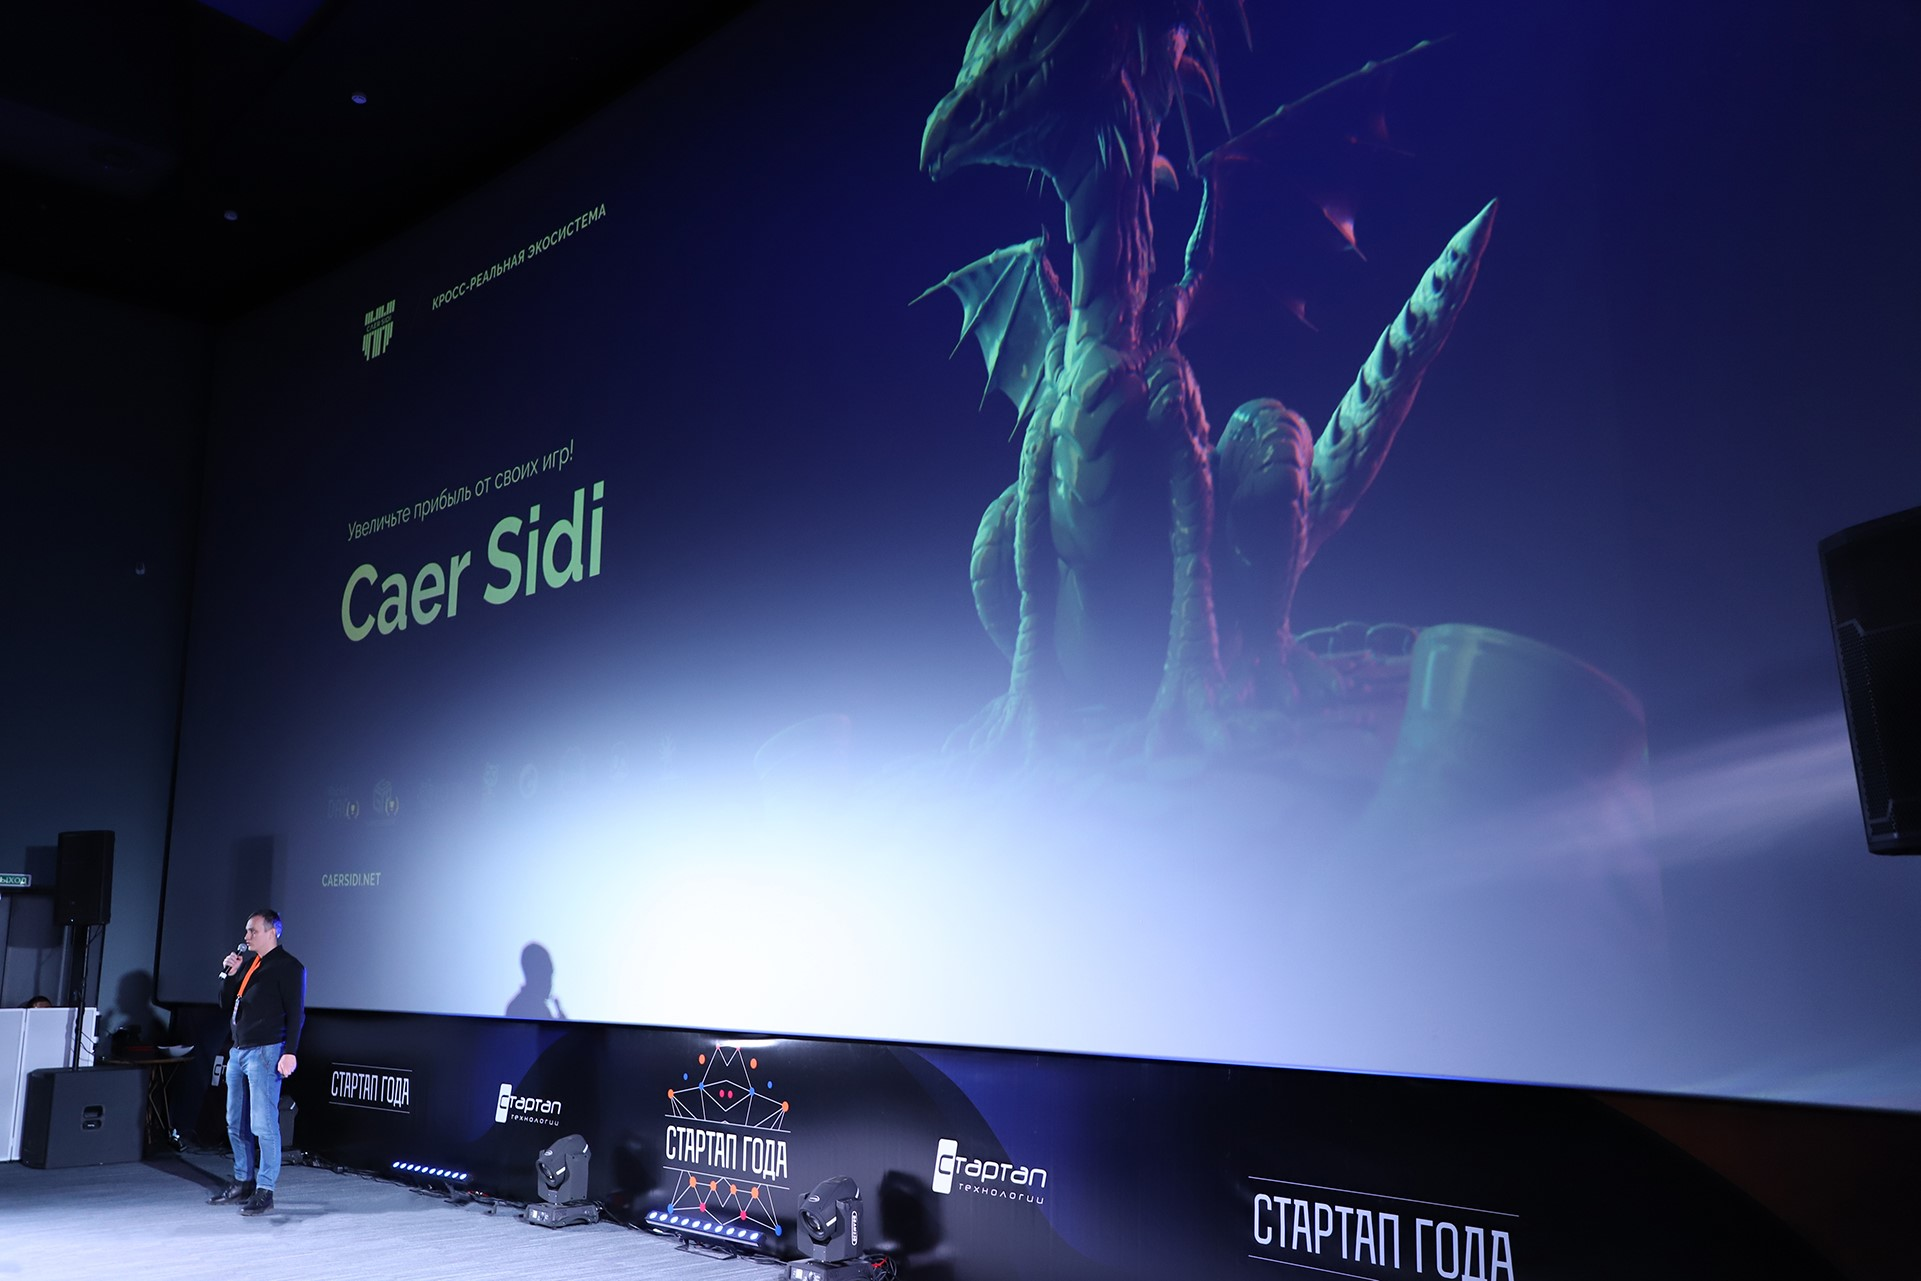 Caer Sidi at the event Startup of the Year 2019